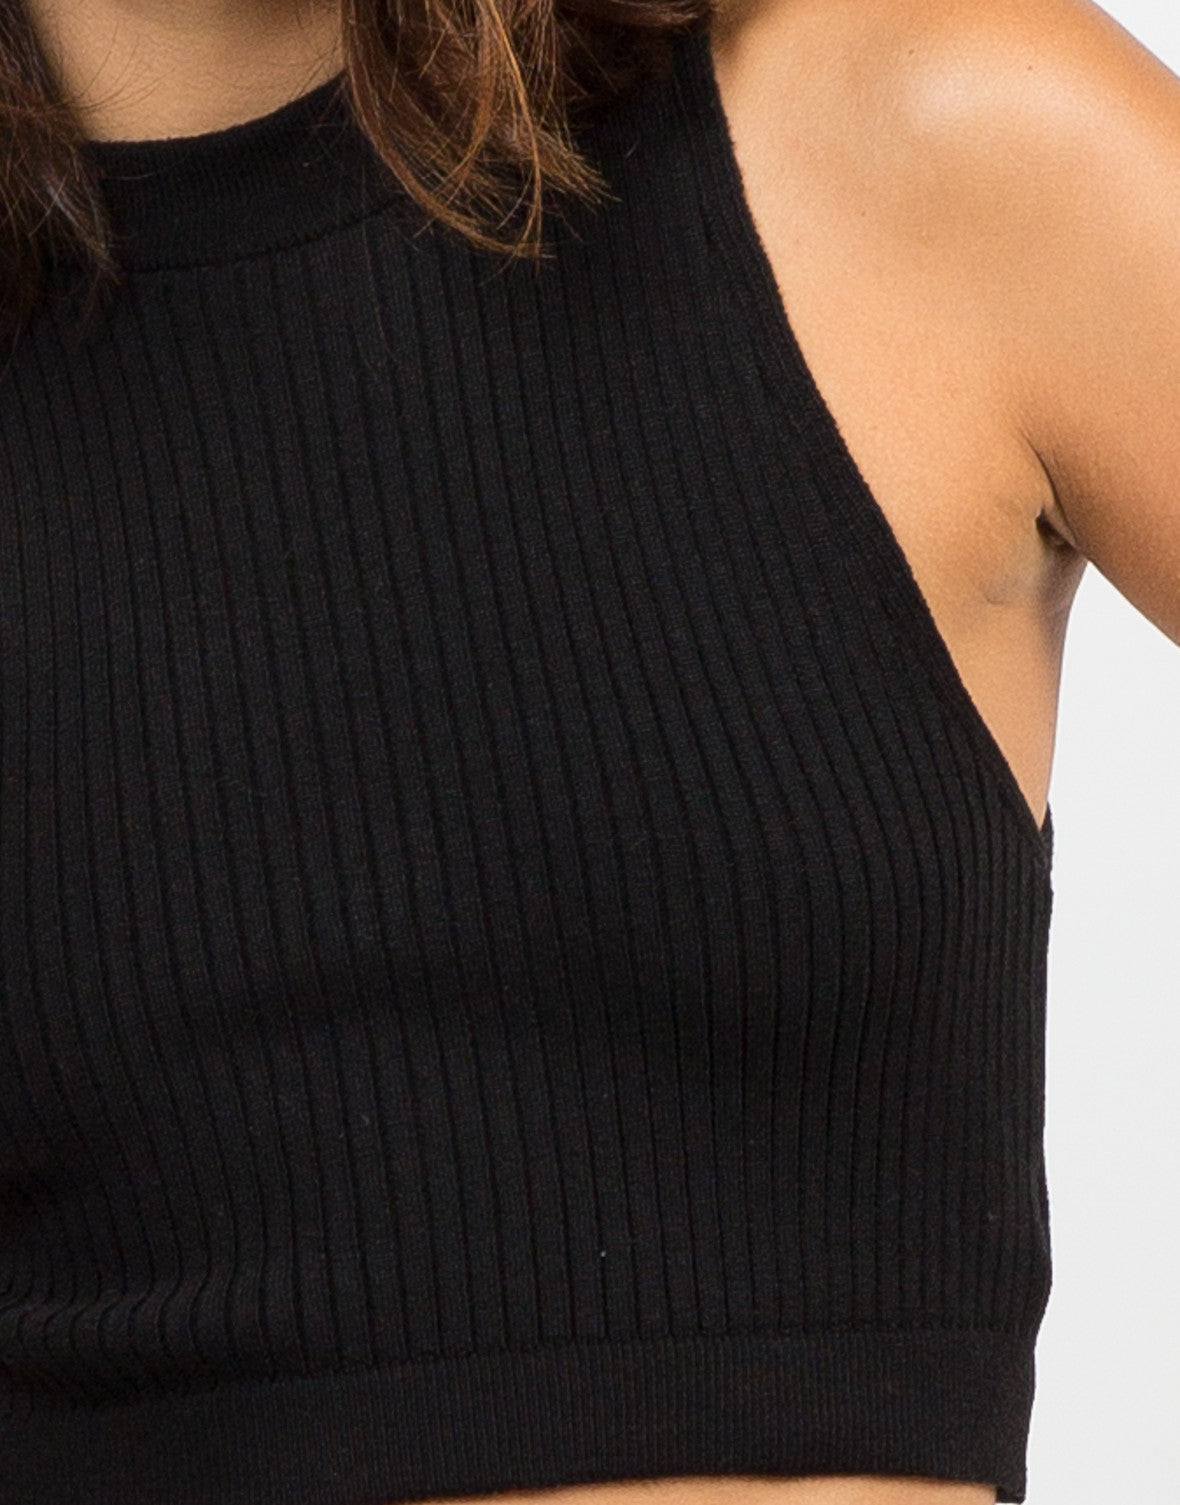 Ribbed Mock Neck Cropped Top - Black - 2020AVE